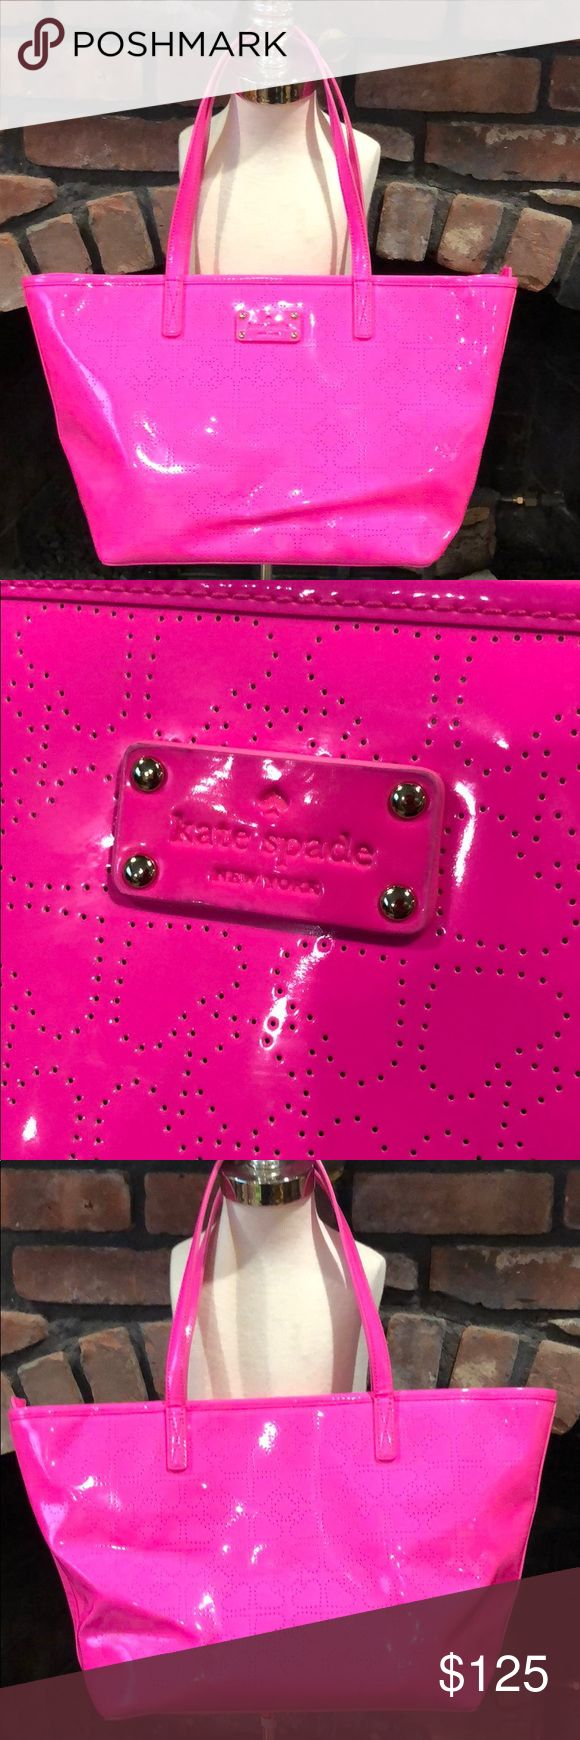 Kate SpadeSmall Harmony Metro Spade Pinksaphre bag Kate SpadeSmall Harmony Metro Spade Pinksaphre bag.  Beautiful fun pink bag with heart shaped print.  Gently carried and cared for.  Lining is spotless.  Minor scuff at bottom of bag as shown in pictures. kate spade Bags Shoulder Bags